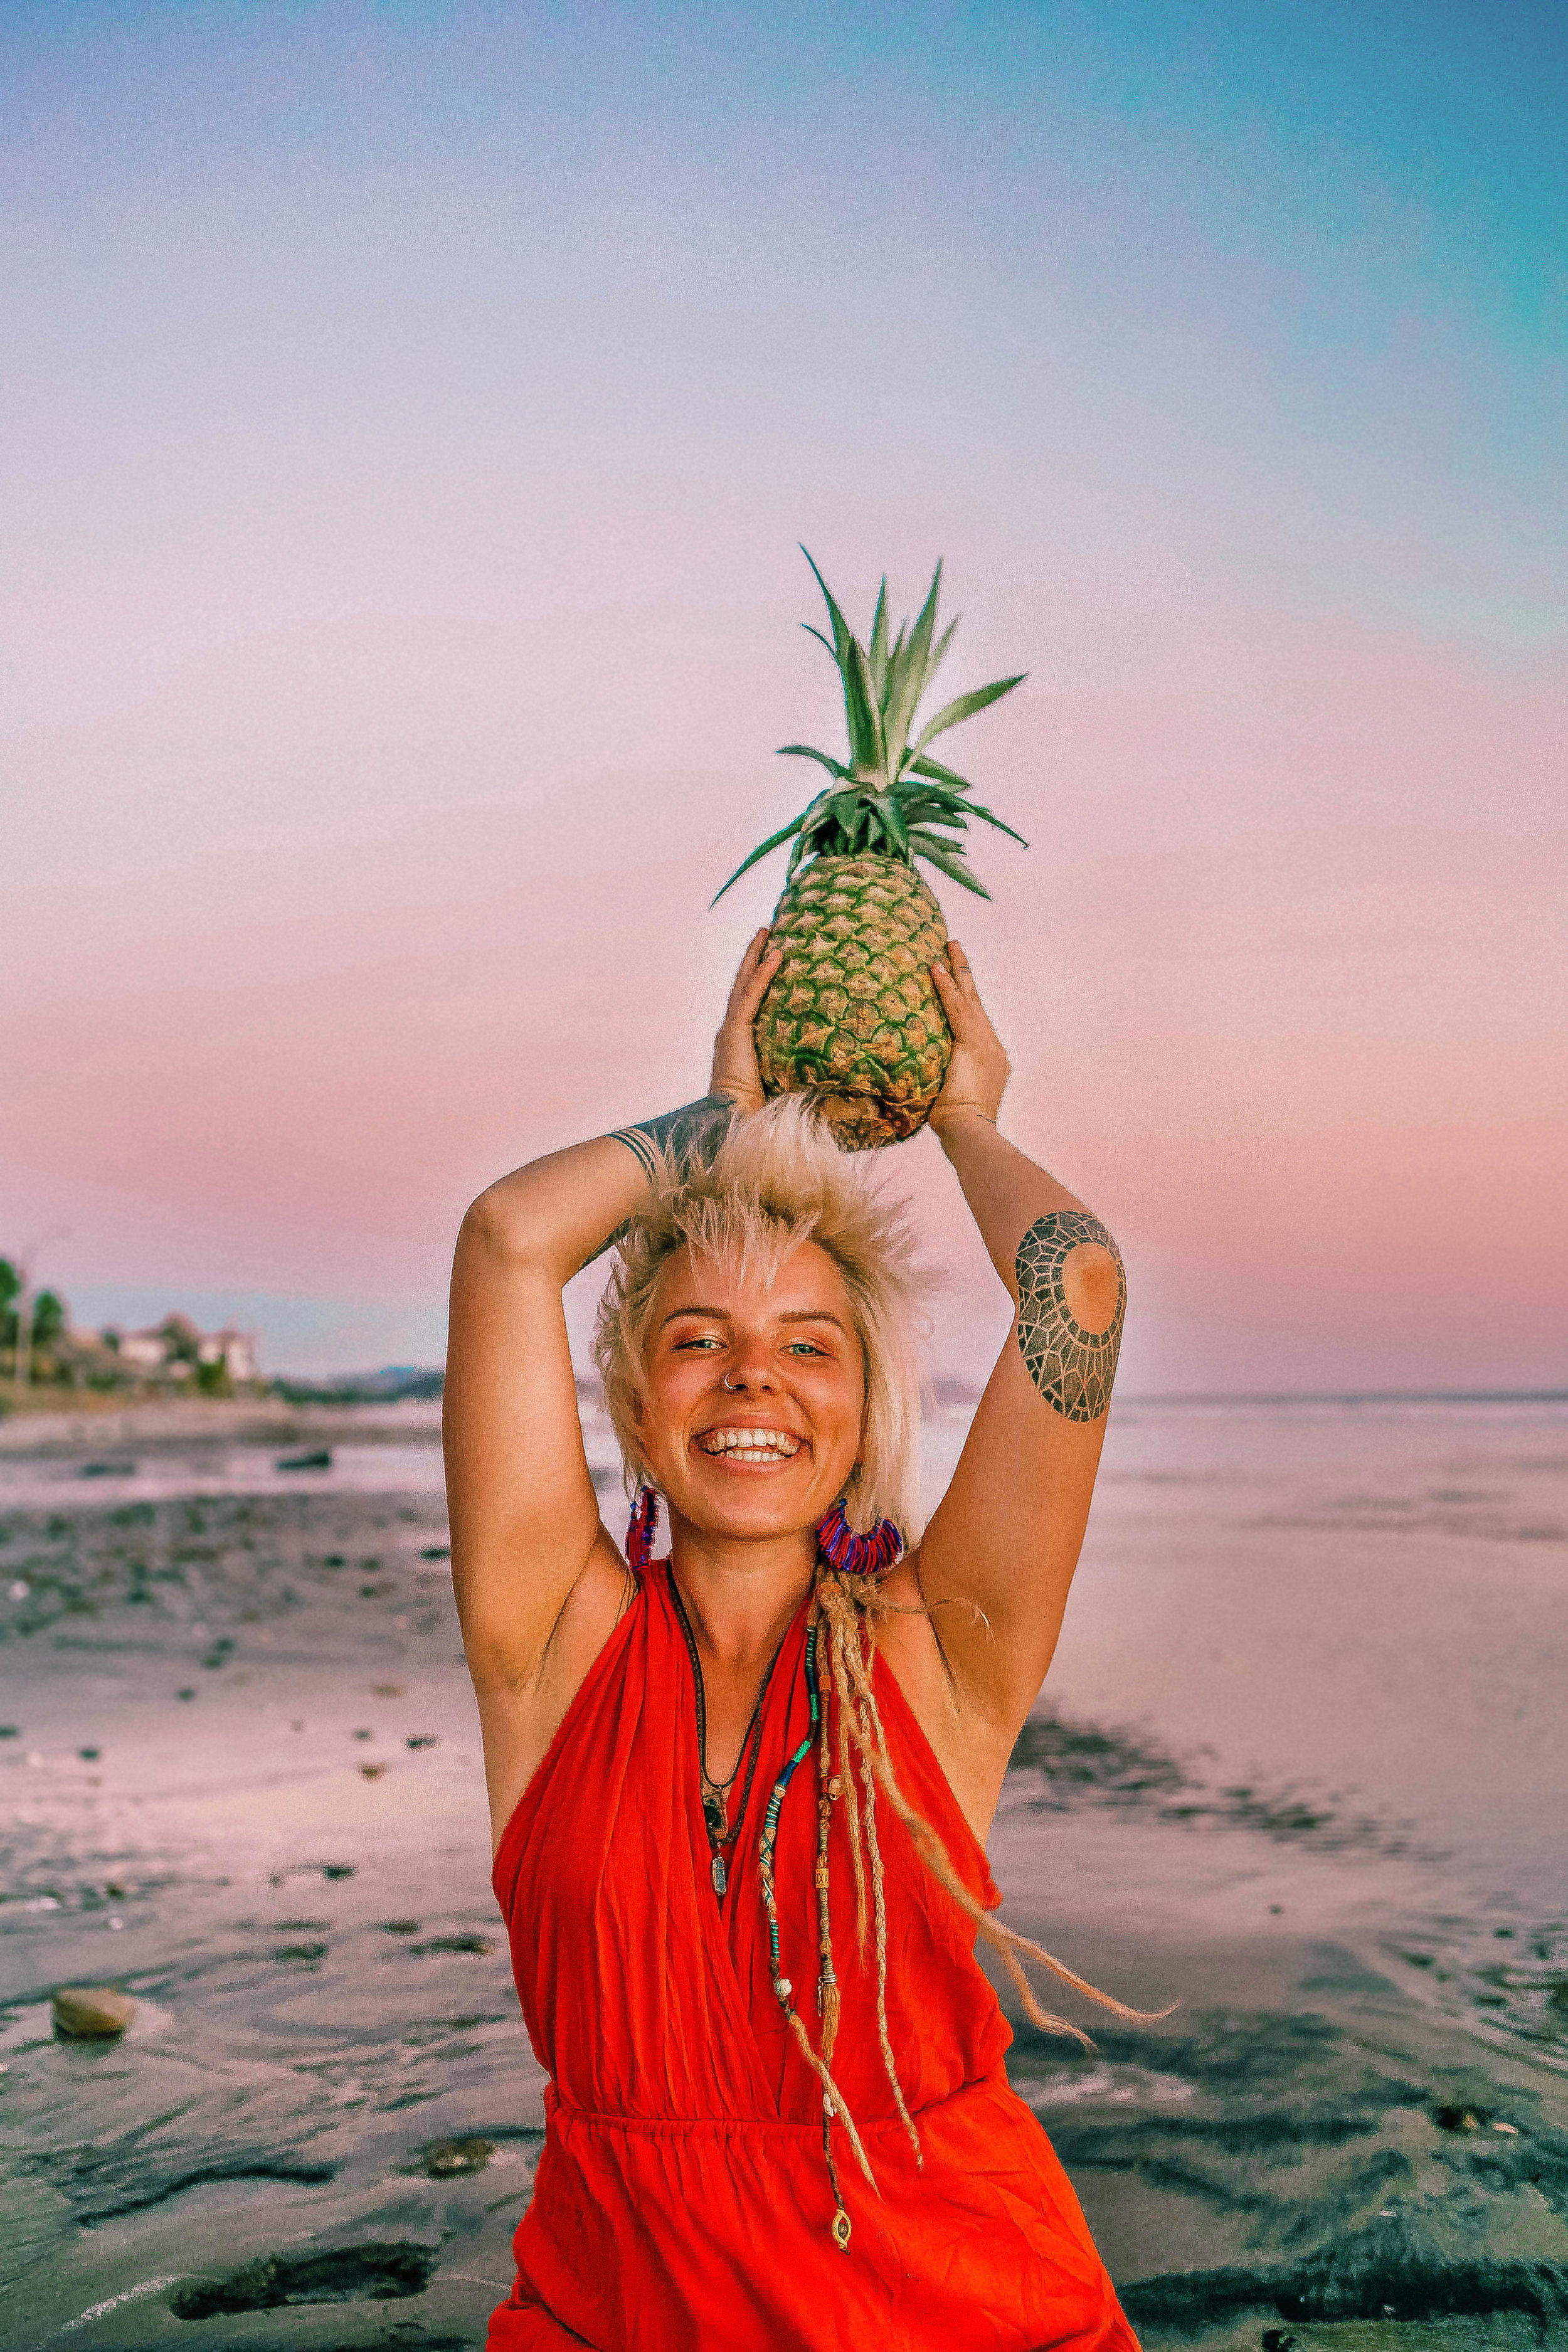 Hi!  - I'm Gaile Juknyte, photographer, traveler, content creator and co-founder of Ever Wonder Store. Originally from Lithuania but currently based in Bali. In 2015 I graduated BA (Hons) Photography in Middlesex University. I'm really passionated about travel, sustainability and conscious tourism and have +5 years of extensive experience in brand and travel photography. Always energetic and dedicated to capture high quality content, organise materials for photoshoots while displaying confidence and professionalism at all times. I'm conversant with different type of photography including fashion, commercial and portraiture.